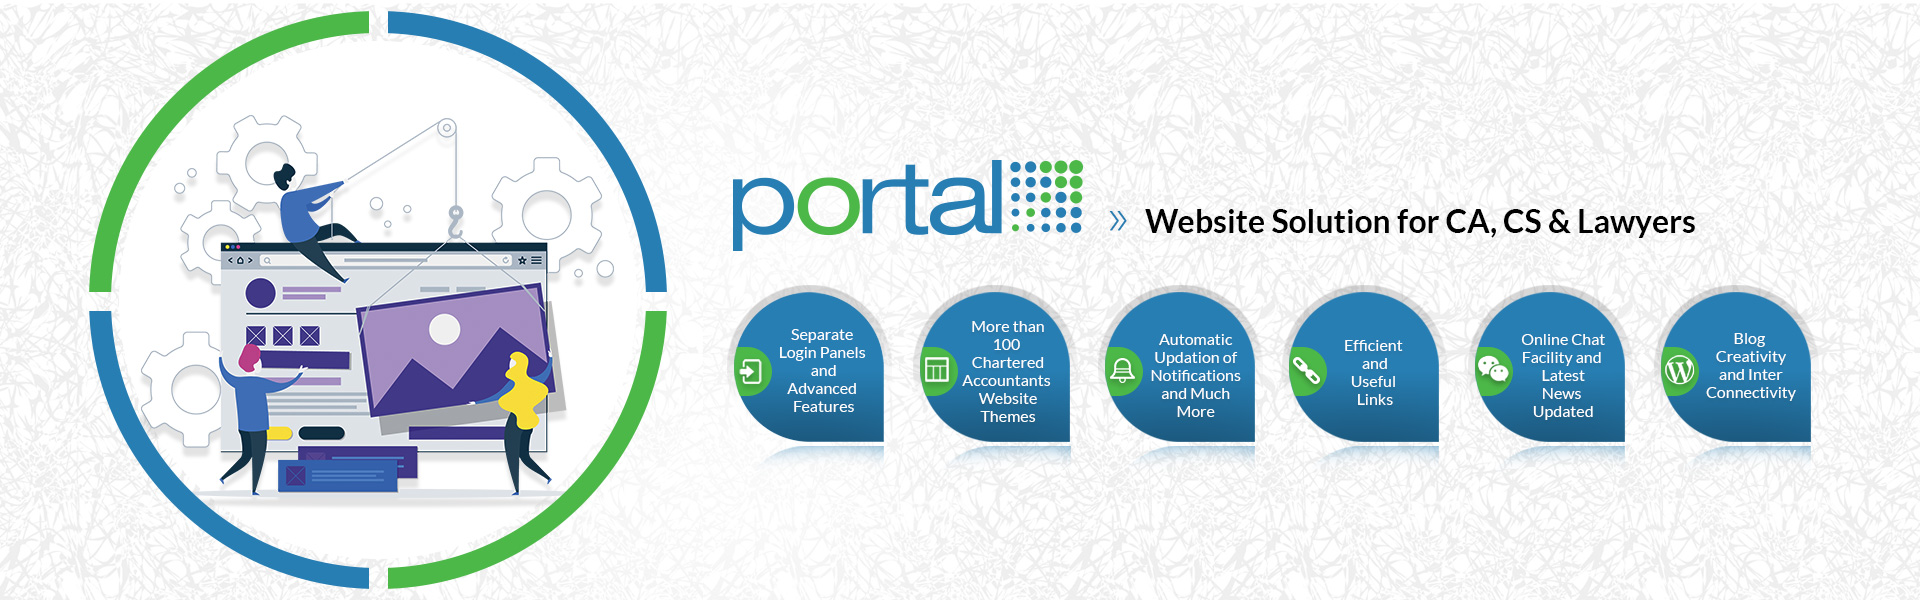 CA Portal Features